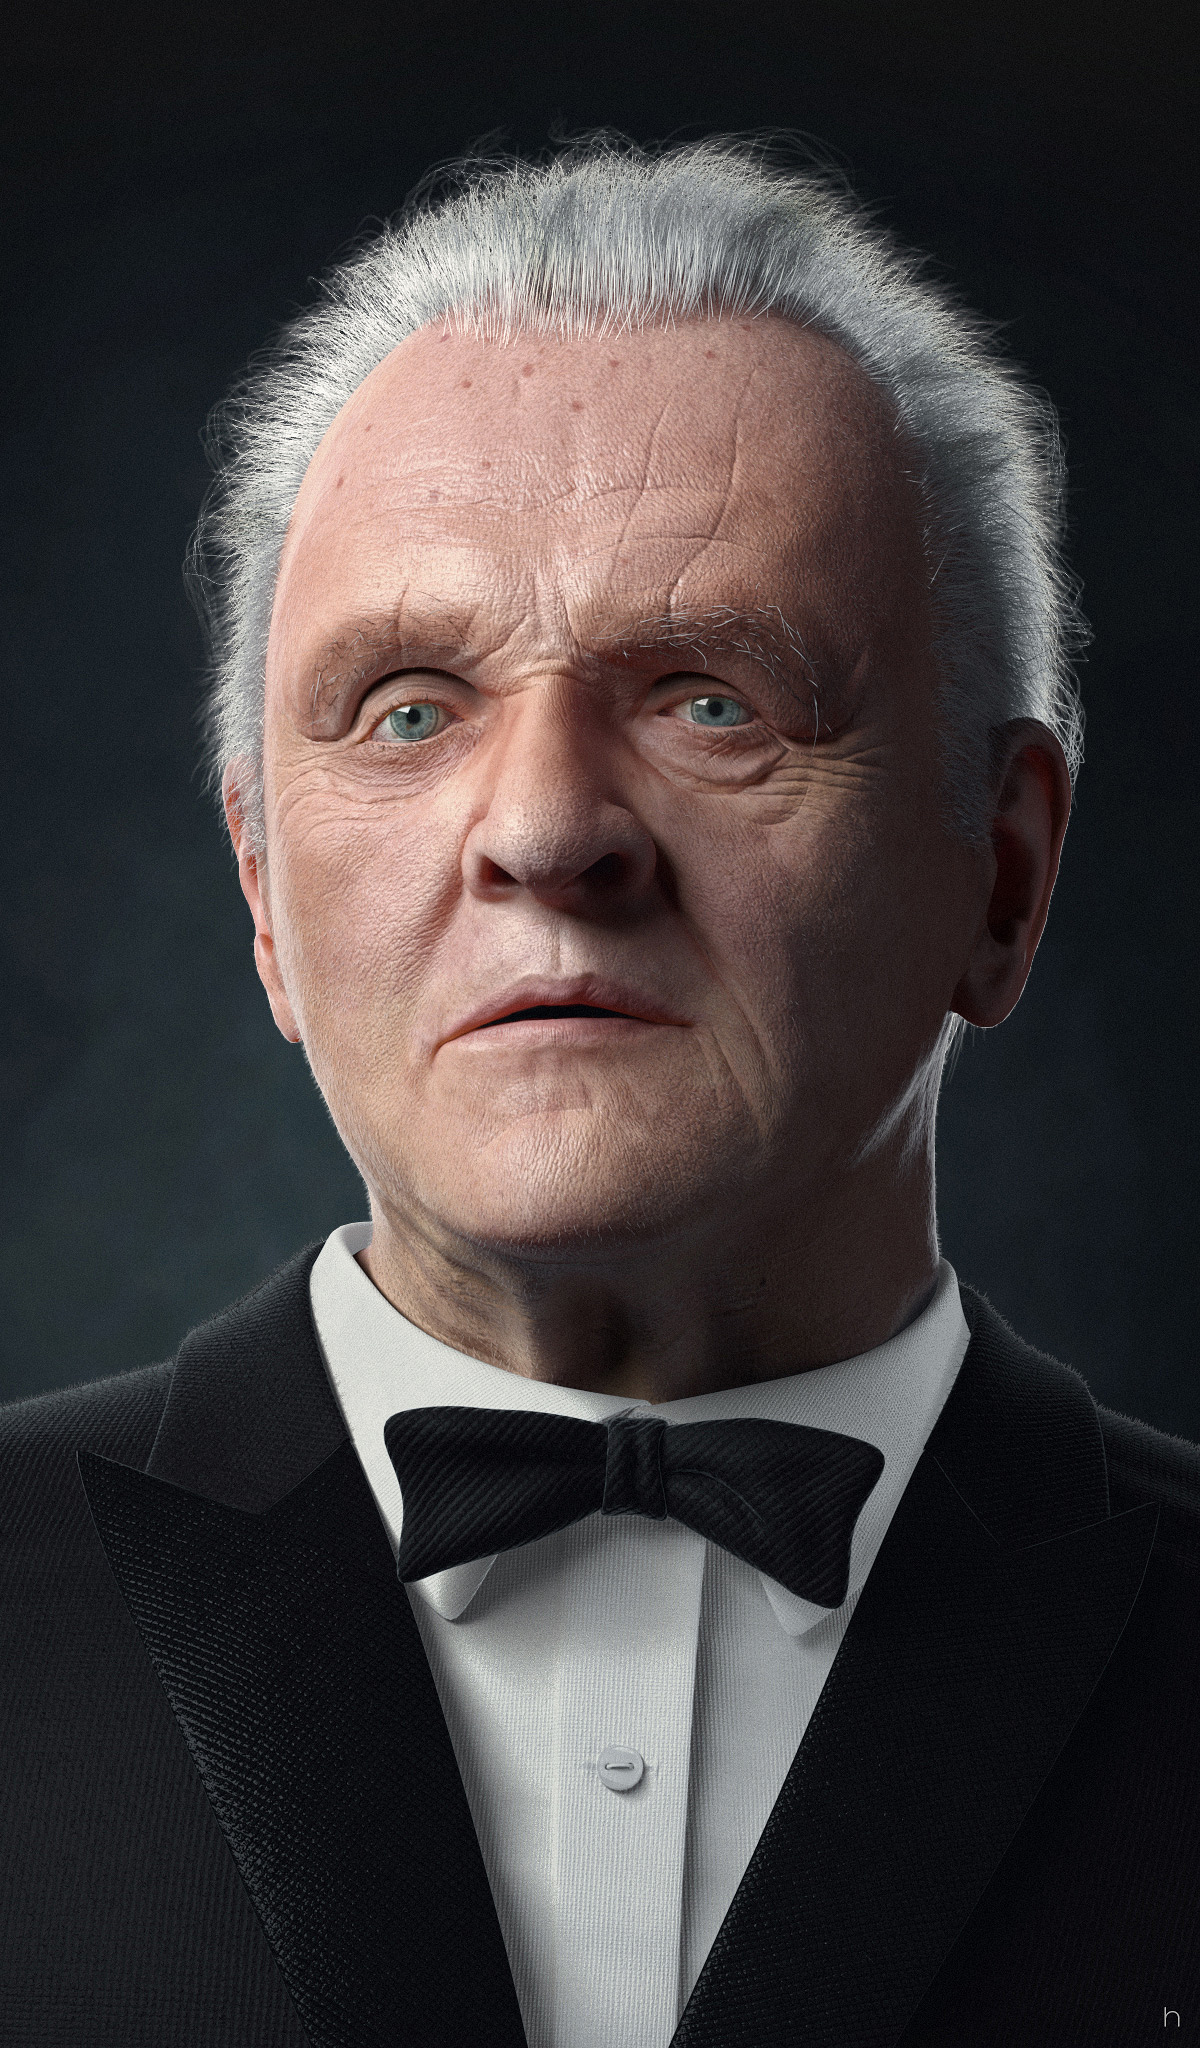 anthony_hopkins_by_hossimo_front.jpg